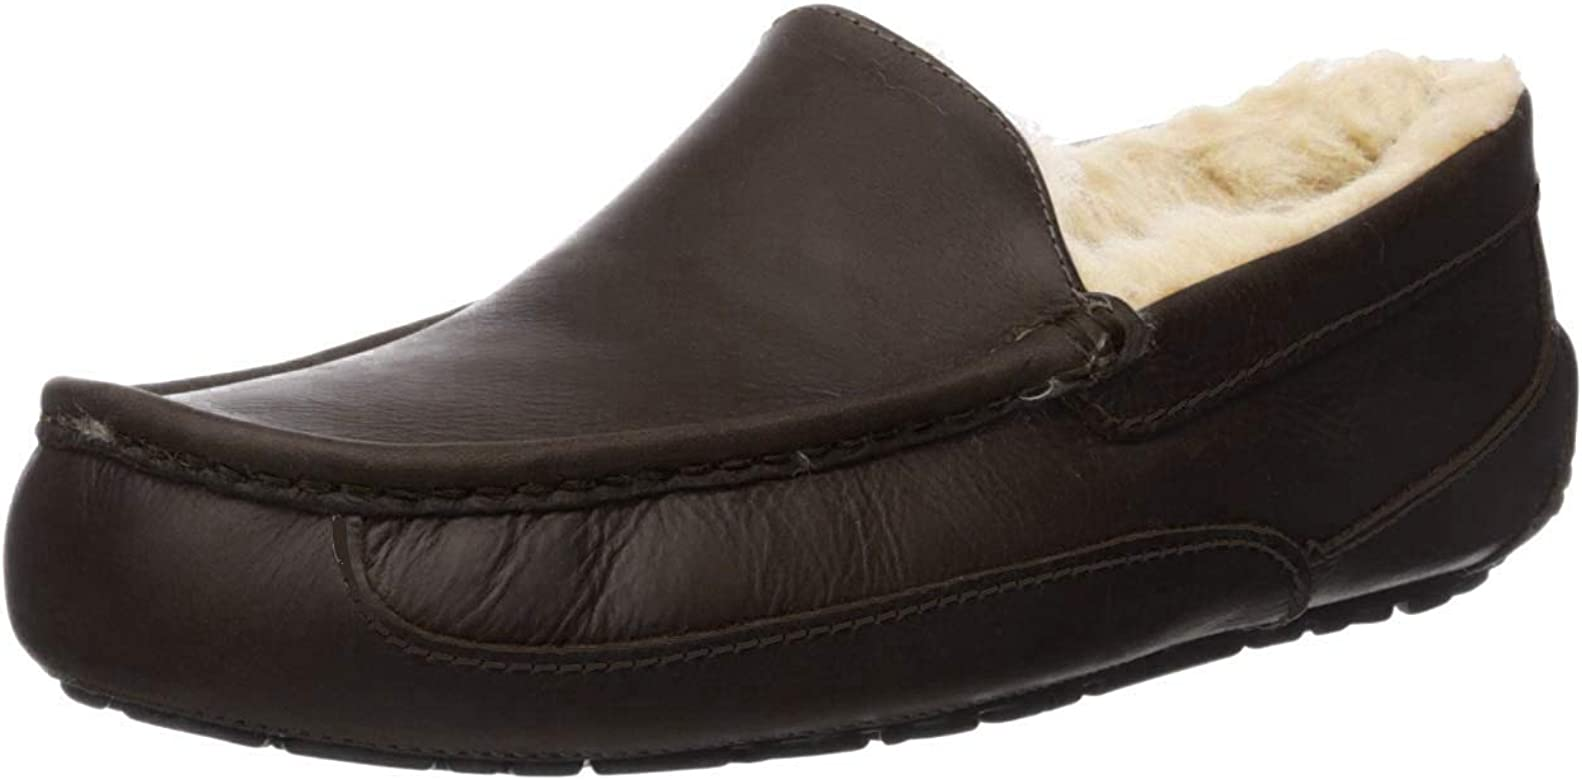 Ascot Leather Slippers